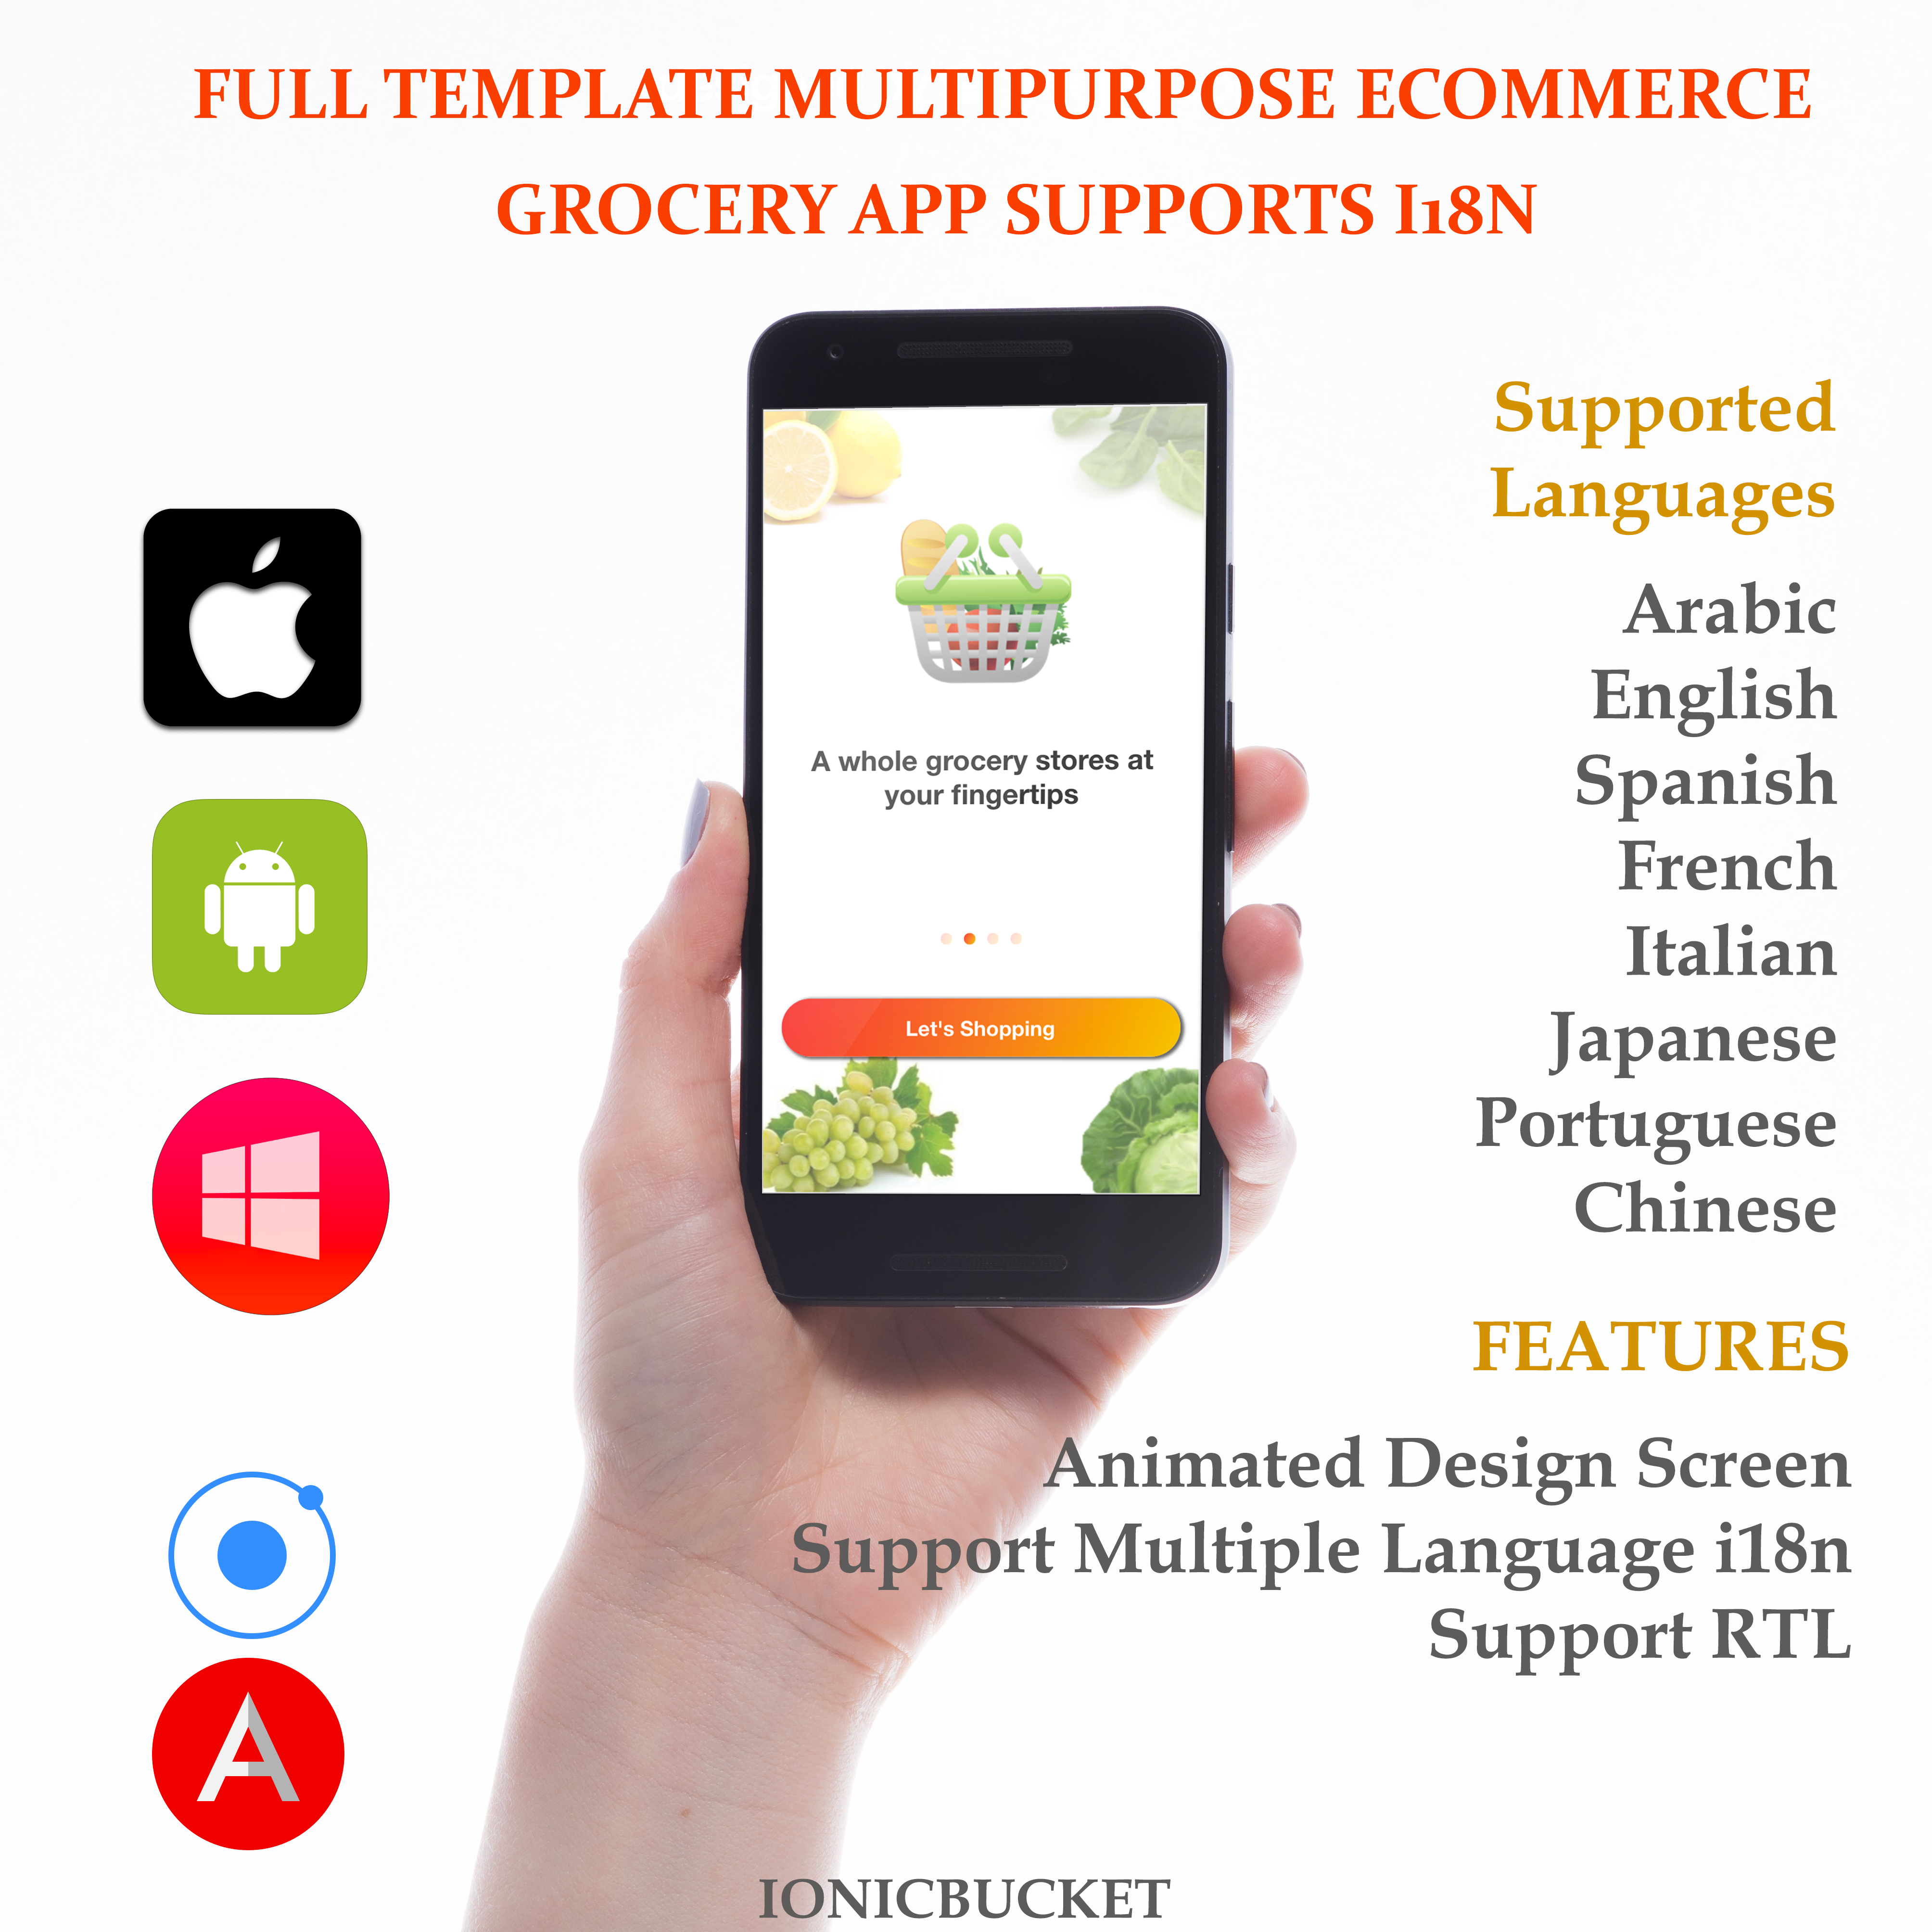 Complete Multipurpose eCommerce Template UI Grocery App Supports ...